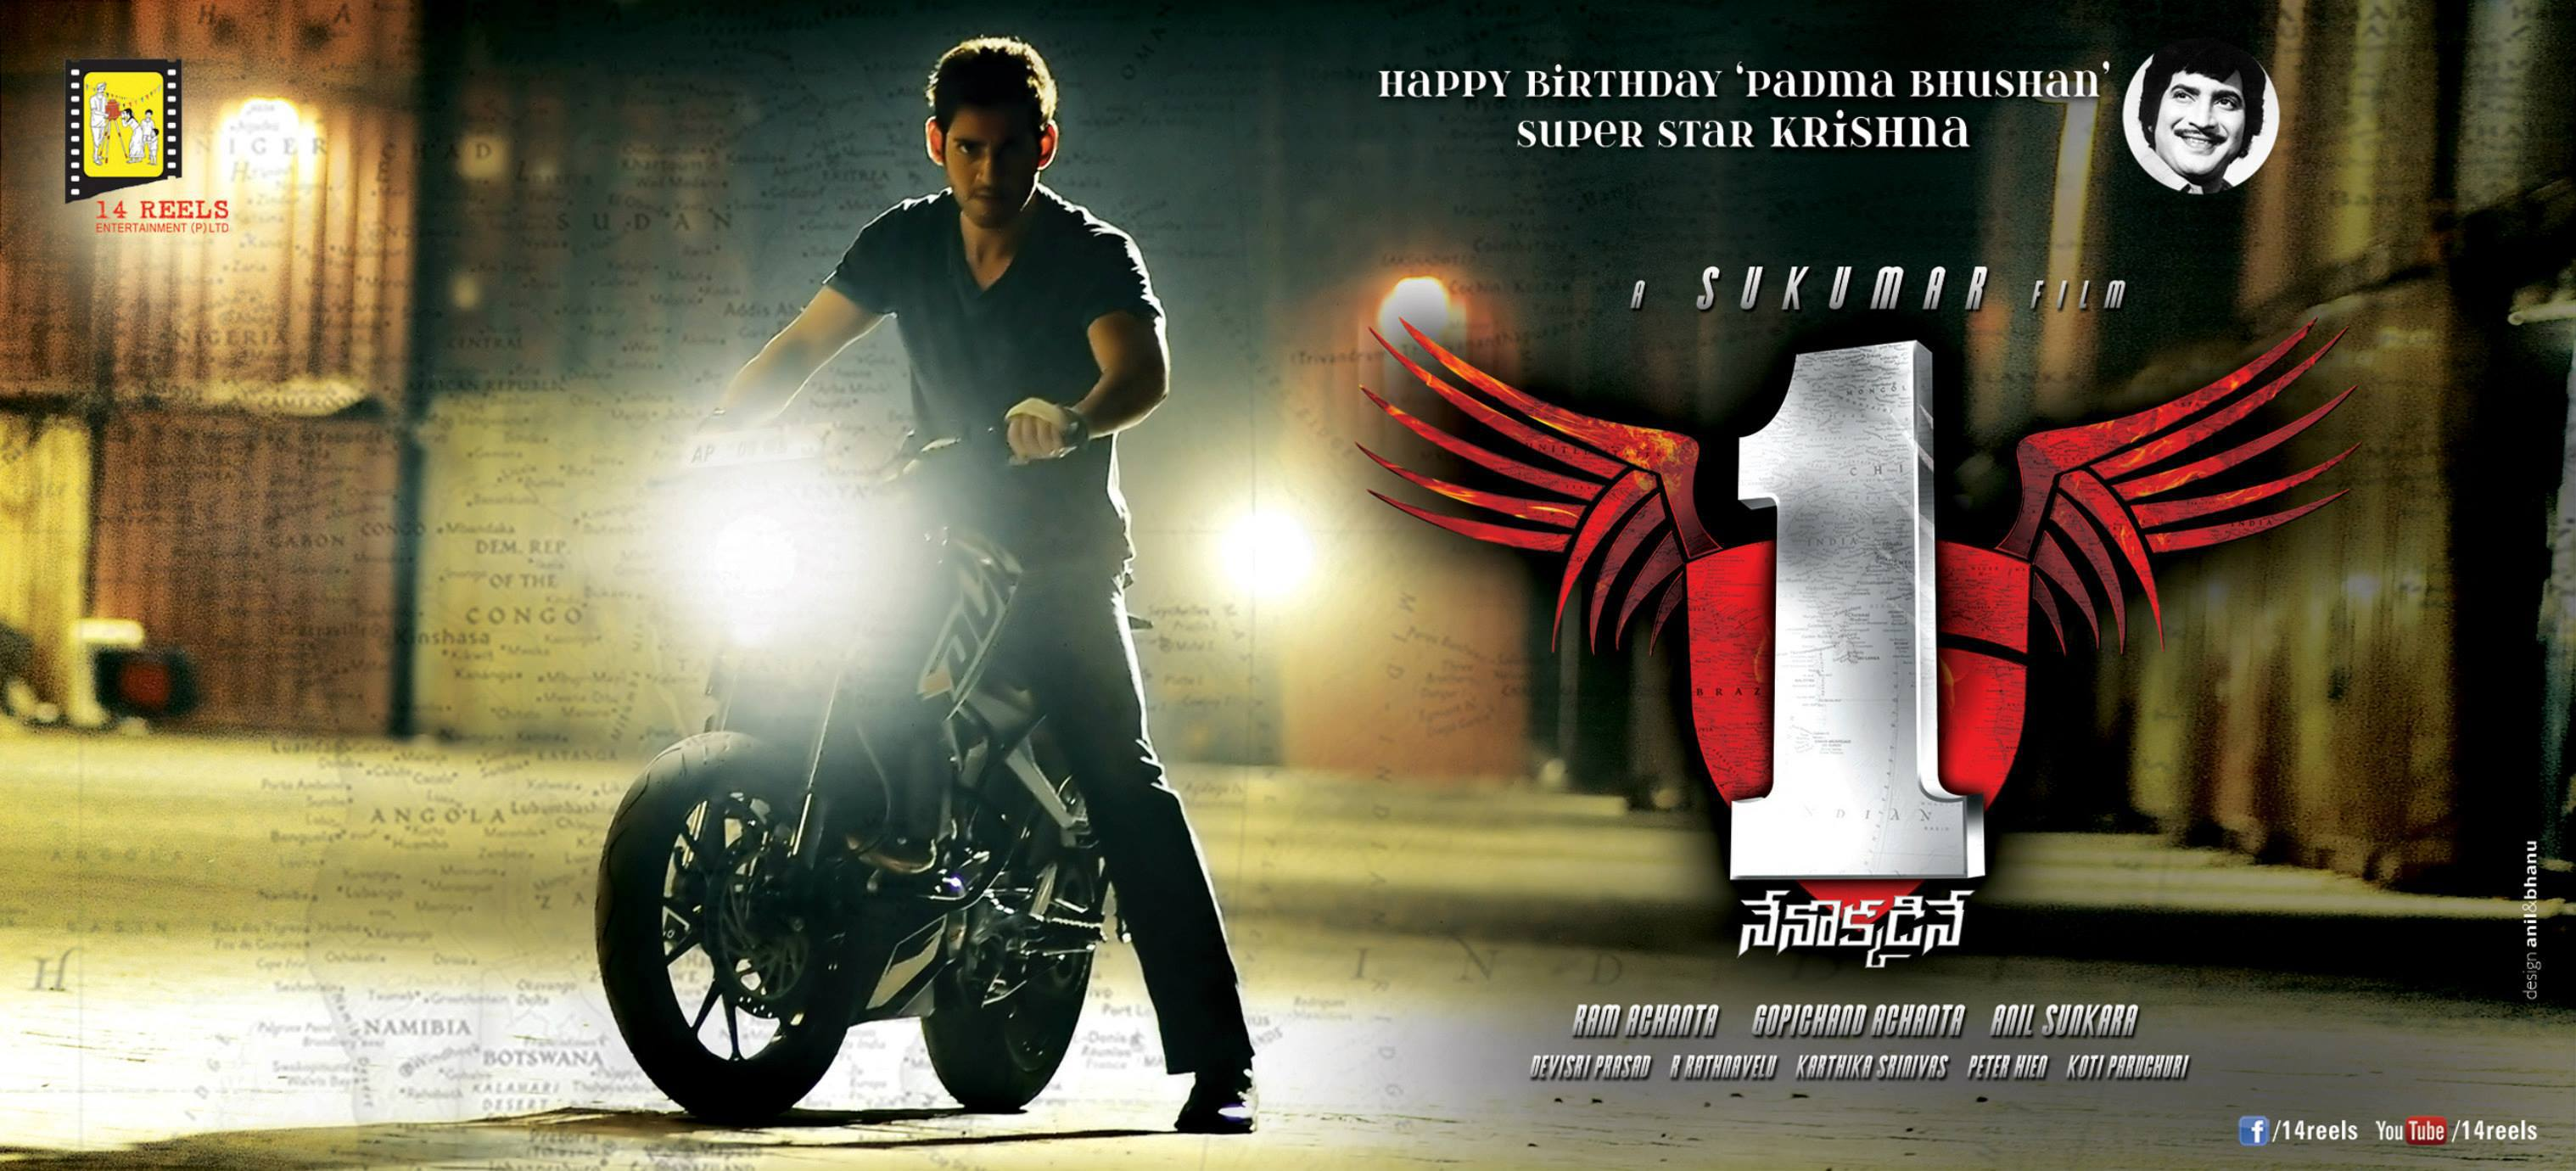 mahesh-babu-1-Nenokkadine-Movie-First-Look-Poster